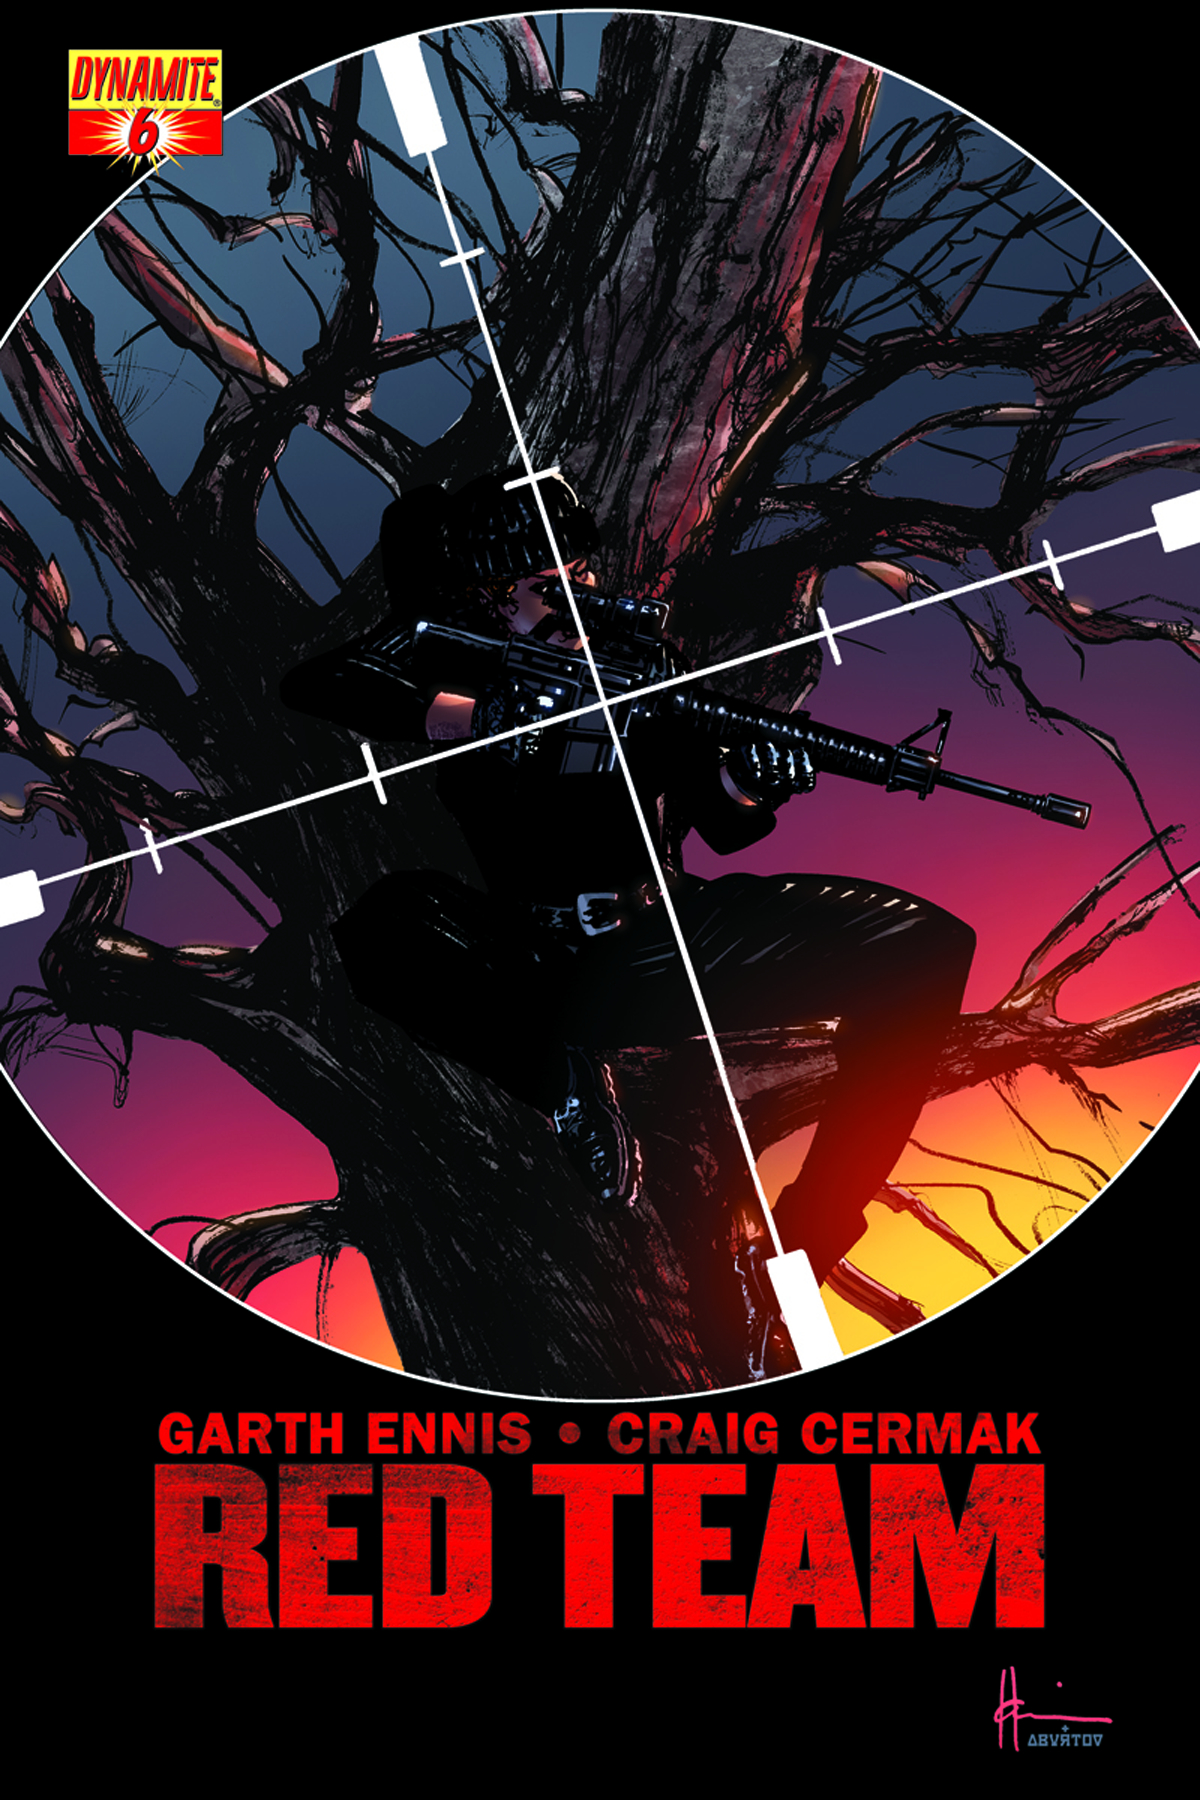 GARTH ENNIS RED TEAM #6